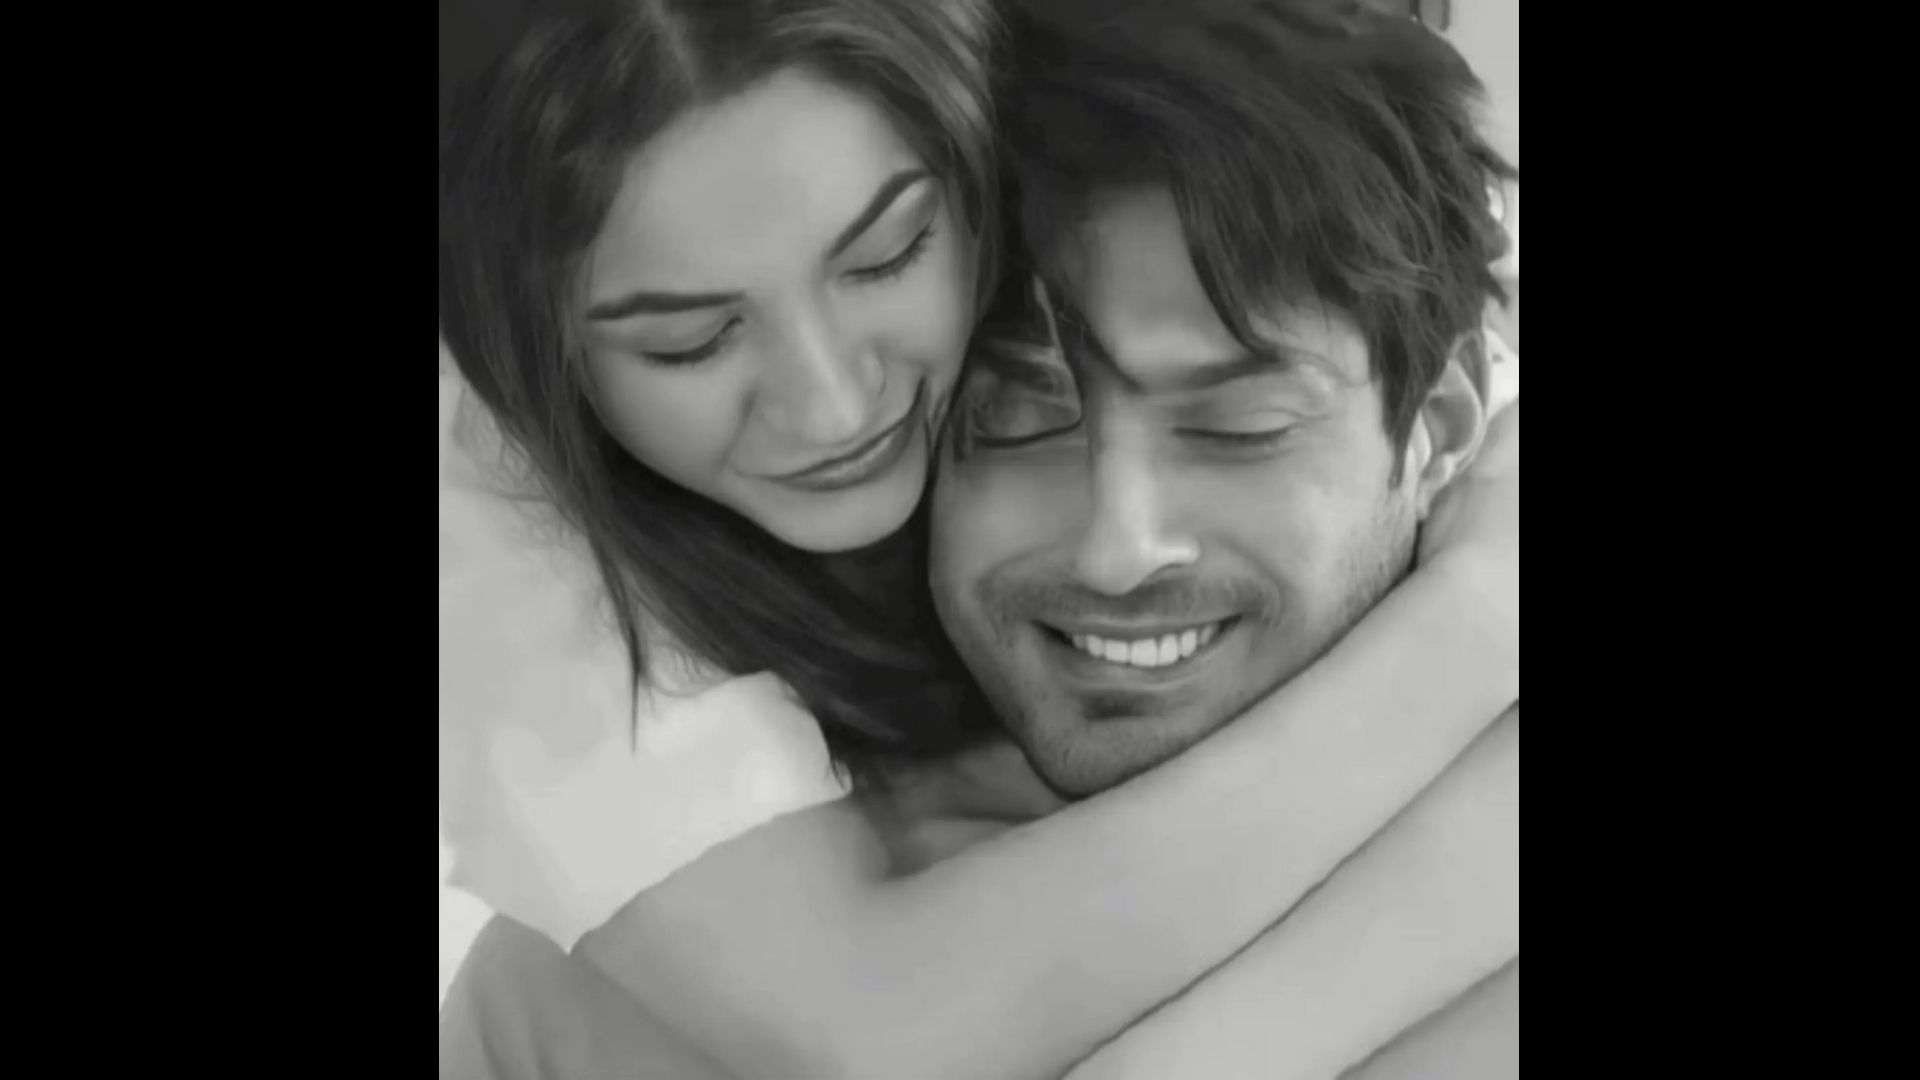 Adhura Poster: Sidharth Shukla And Shehnaaz Gill's Last Love Track Together Will Reduce You To Tears